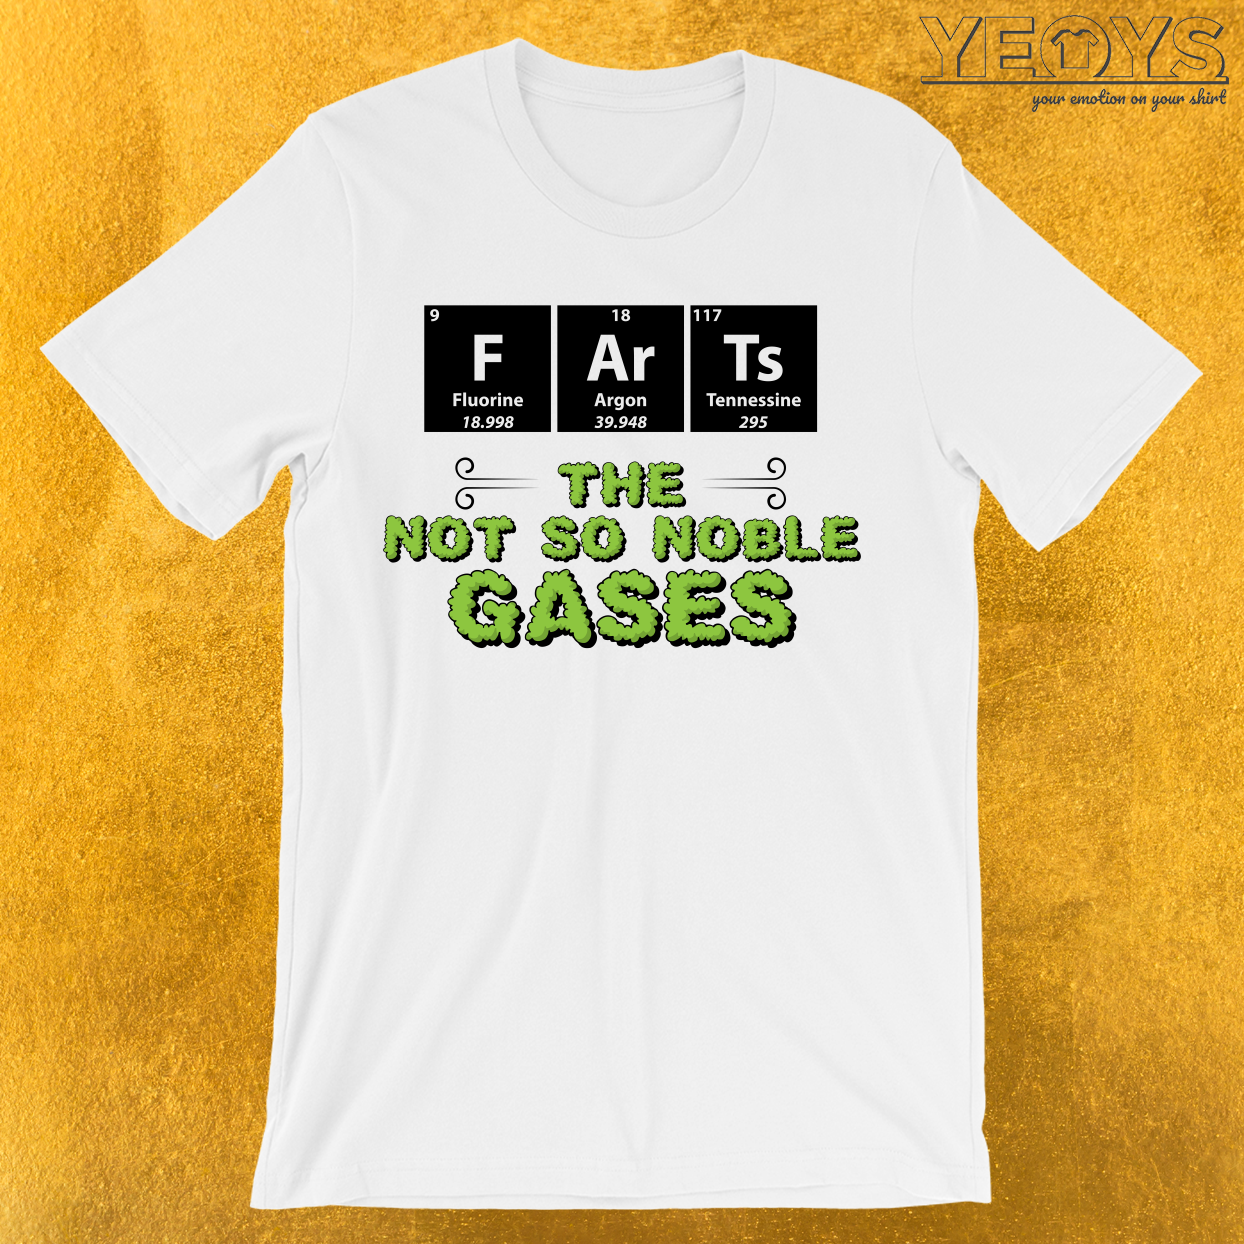 a70ddb4ce2 Farts The Not So Noble Gases T-Shirt --- Chemist Humor Novelty: This ...